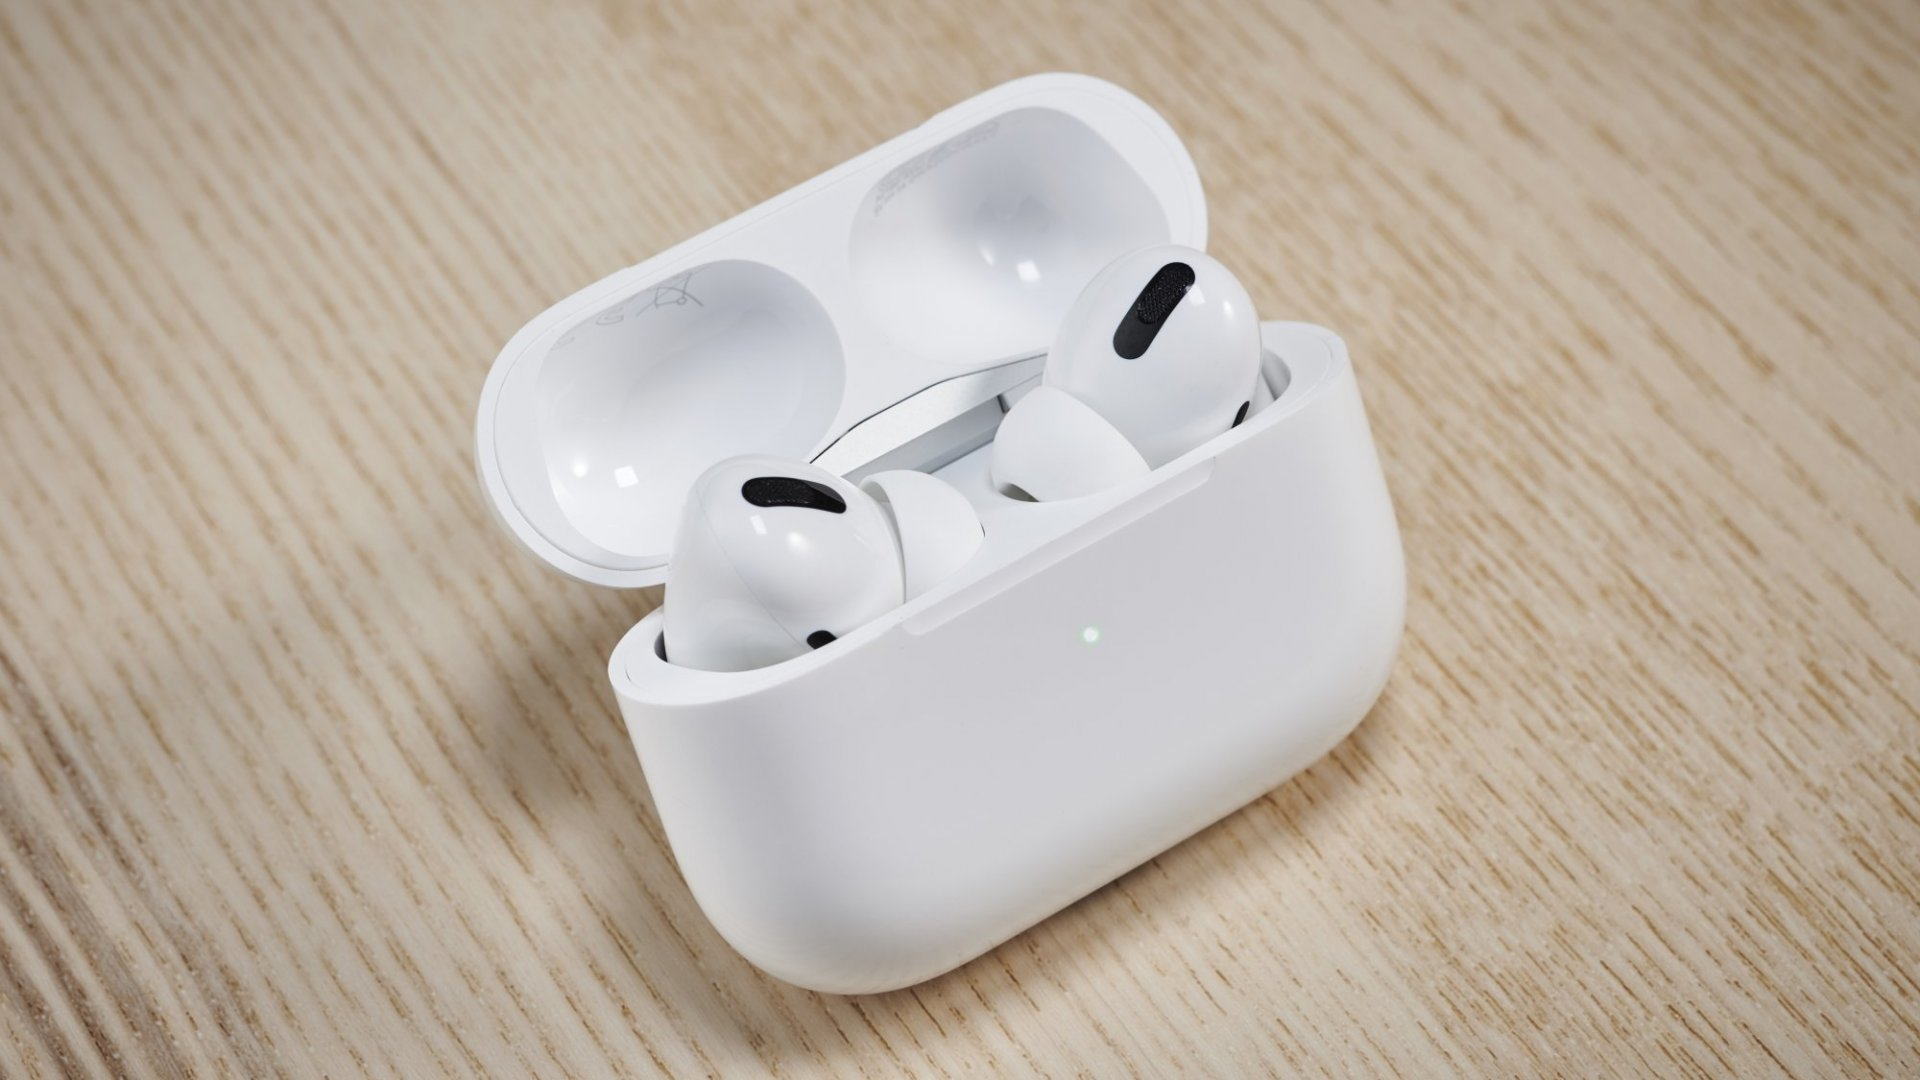 5 Really Useful Tricks You Had No Idea You Could Do With Your AirPods Pro